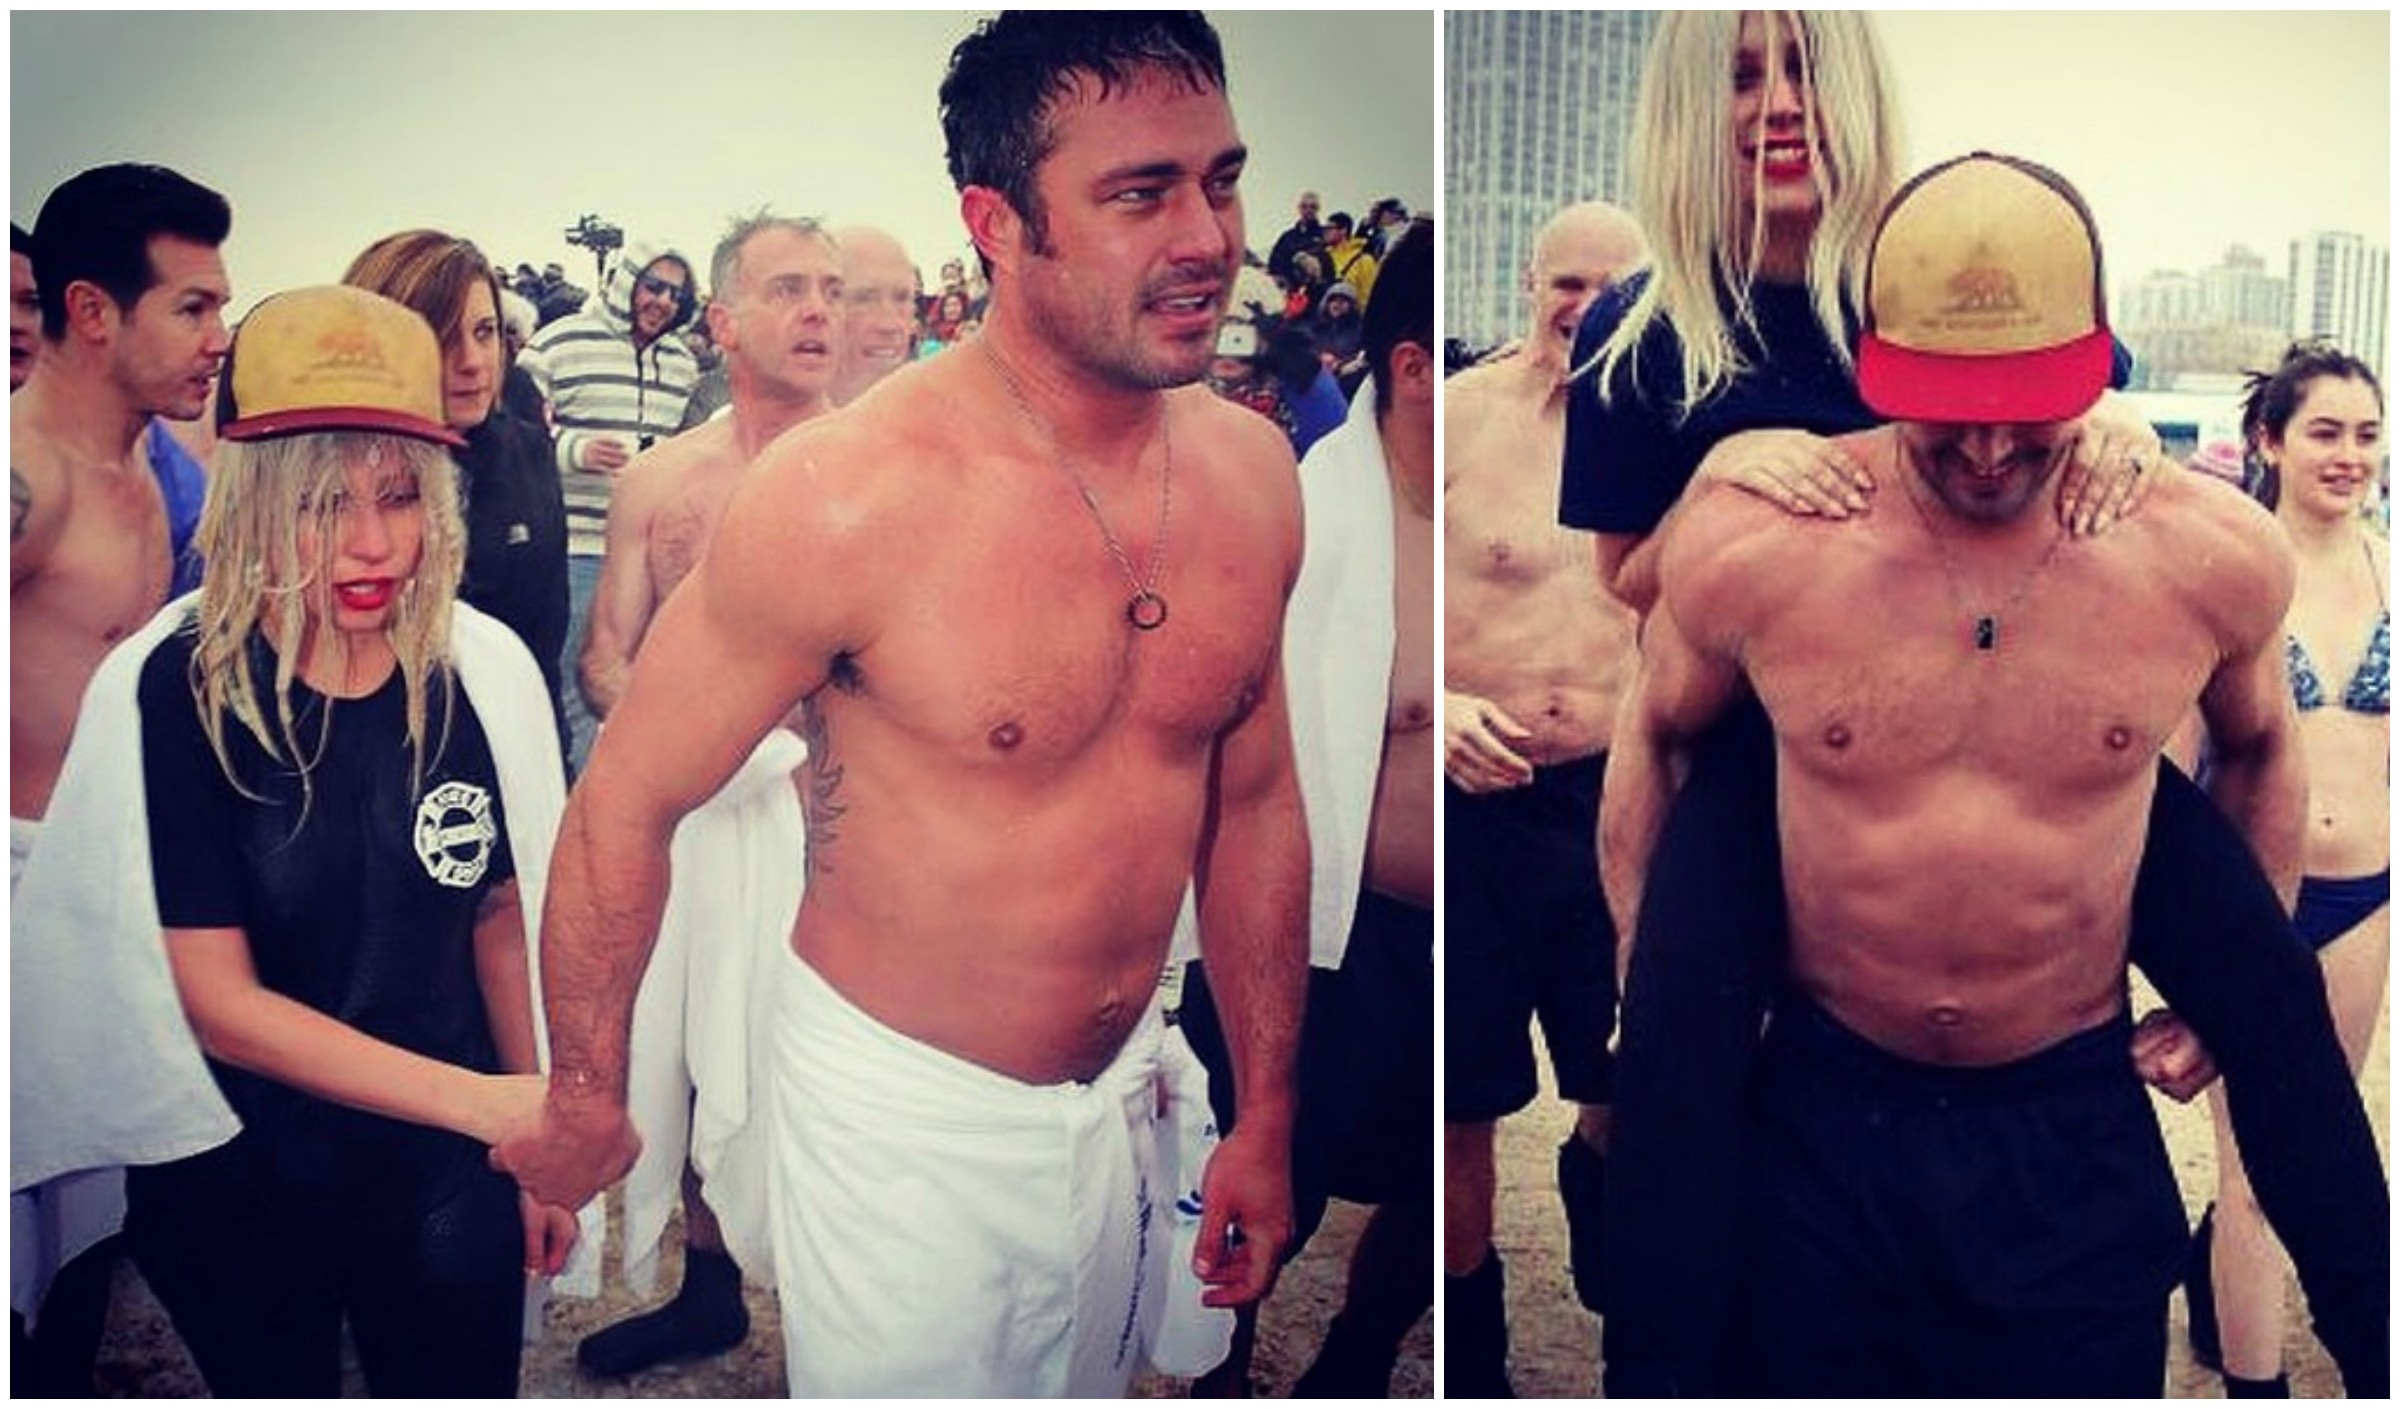 Taylor kinney em evento beneficente no domingo foto instagram